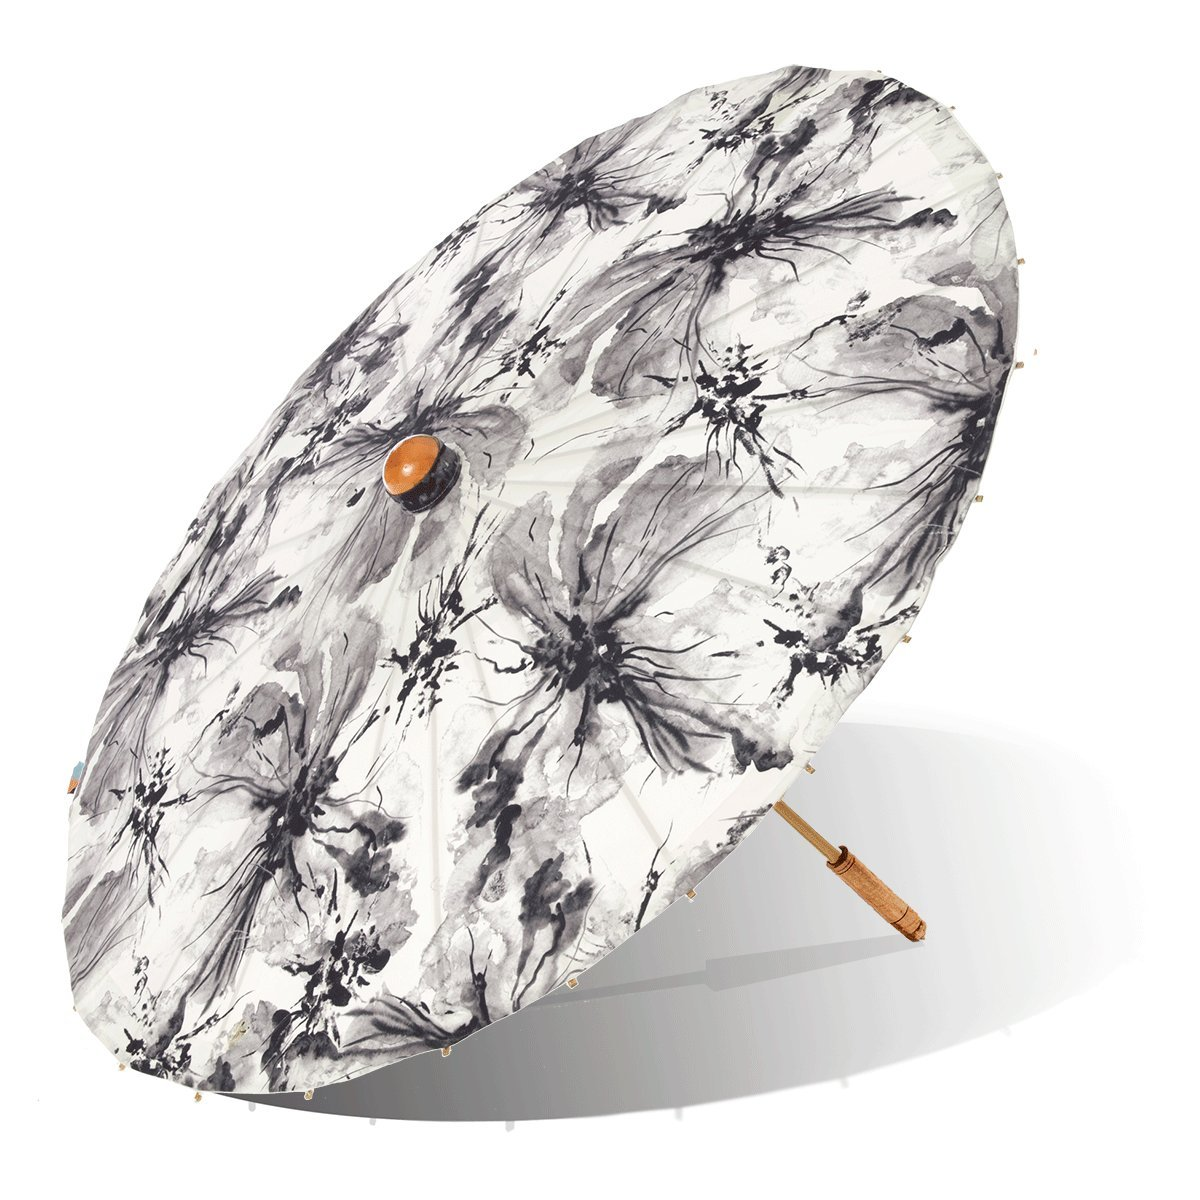 Lily-Lark Ink Wash Flowers UV protection sun parasol, rated UPF 50+ by Lily-Lark